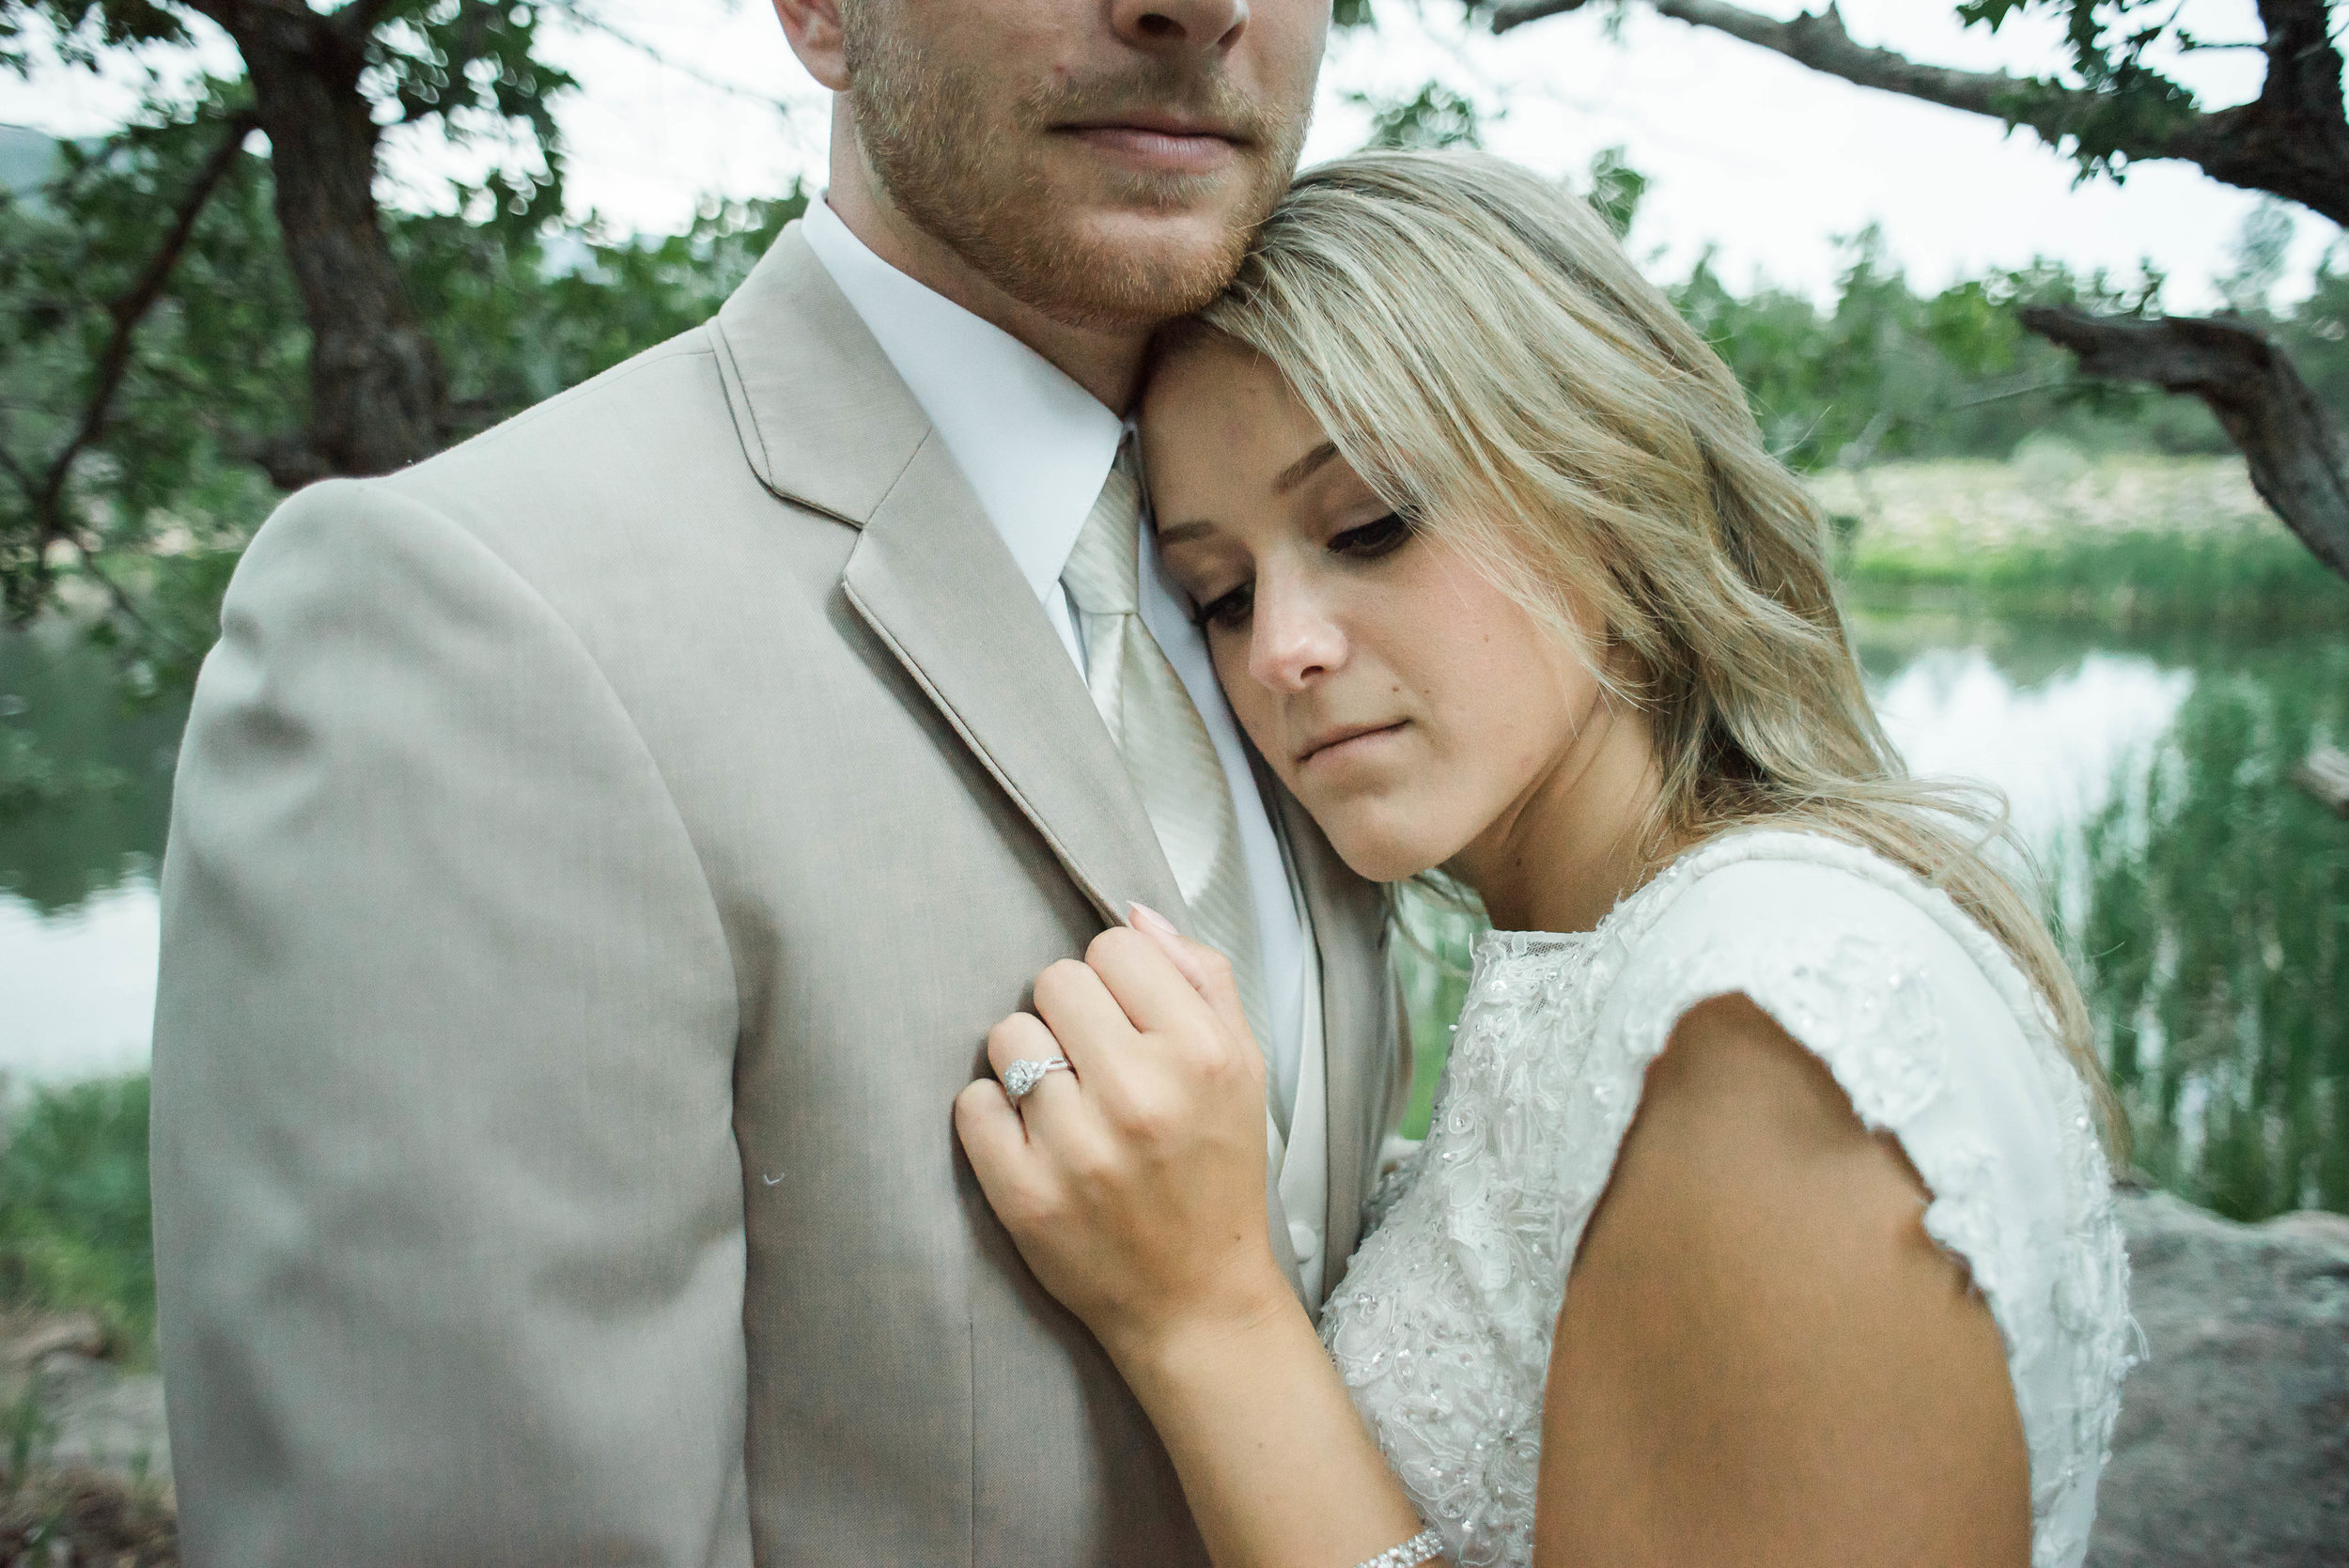 DANIEL+LACI-Sadie_Banks_Photography-73.jpg